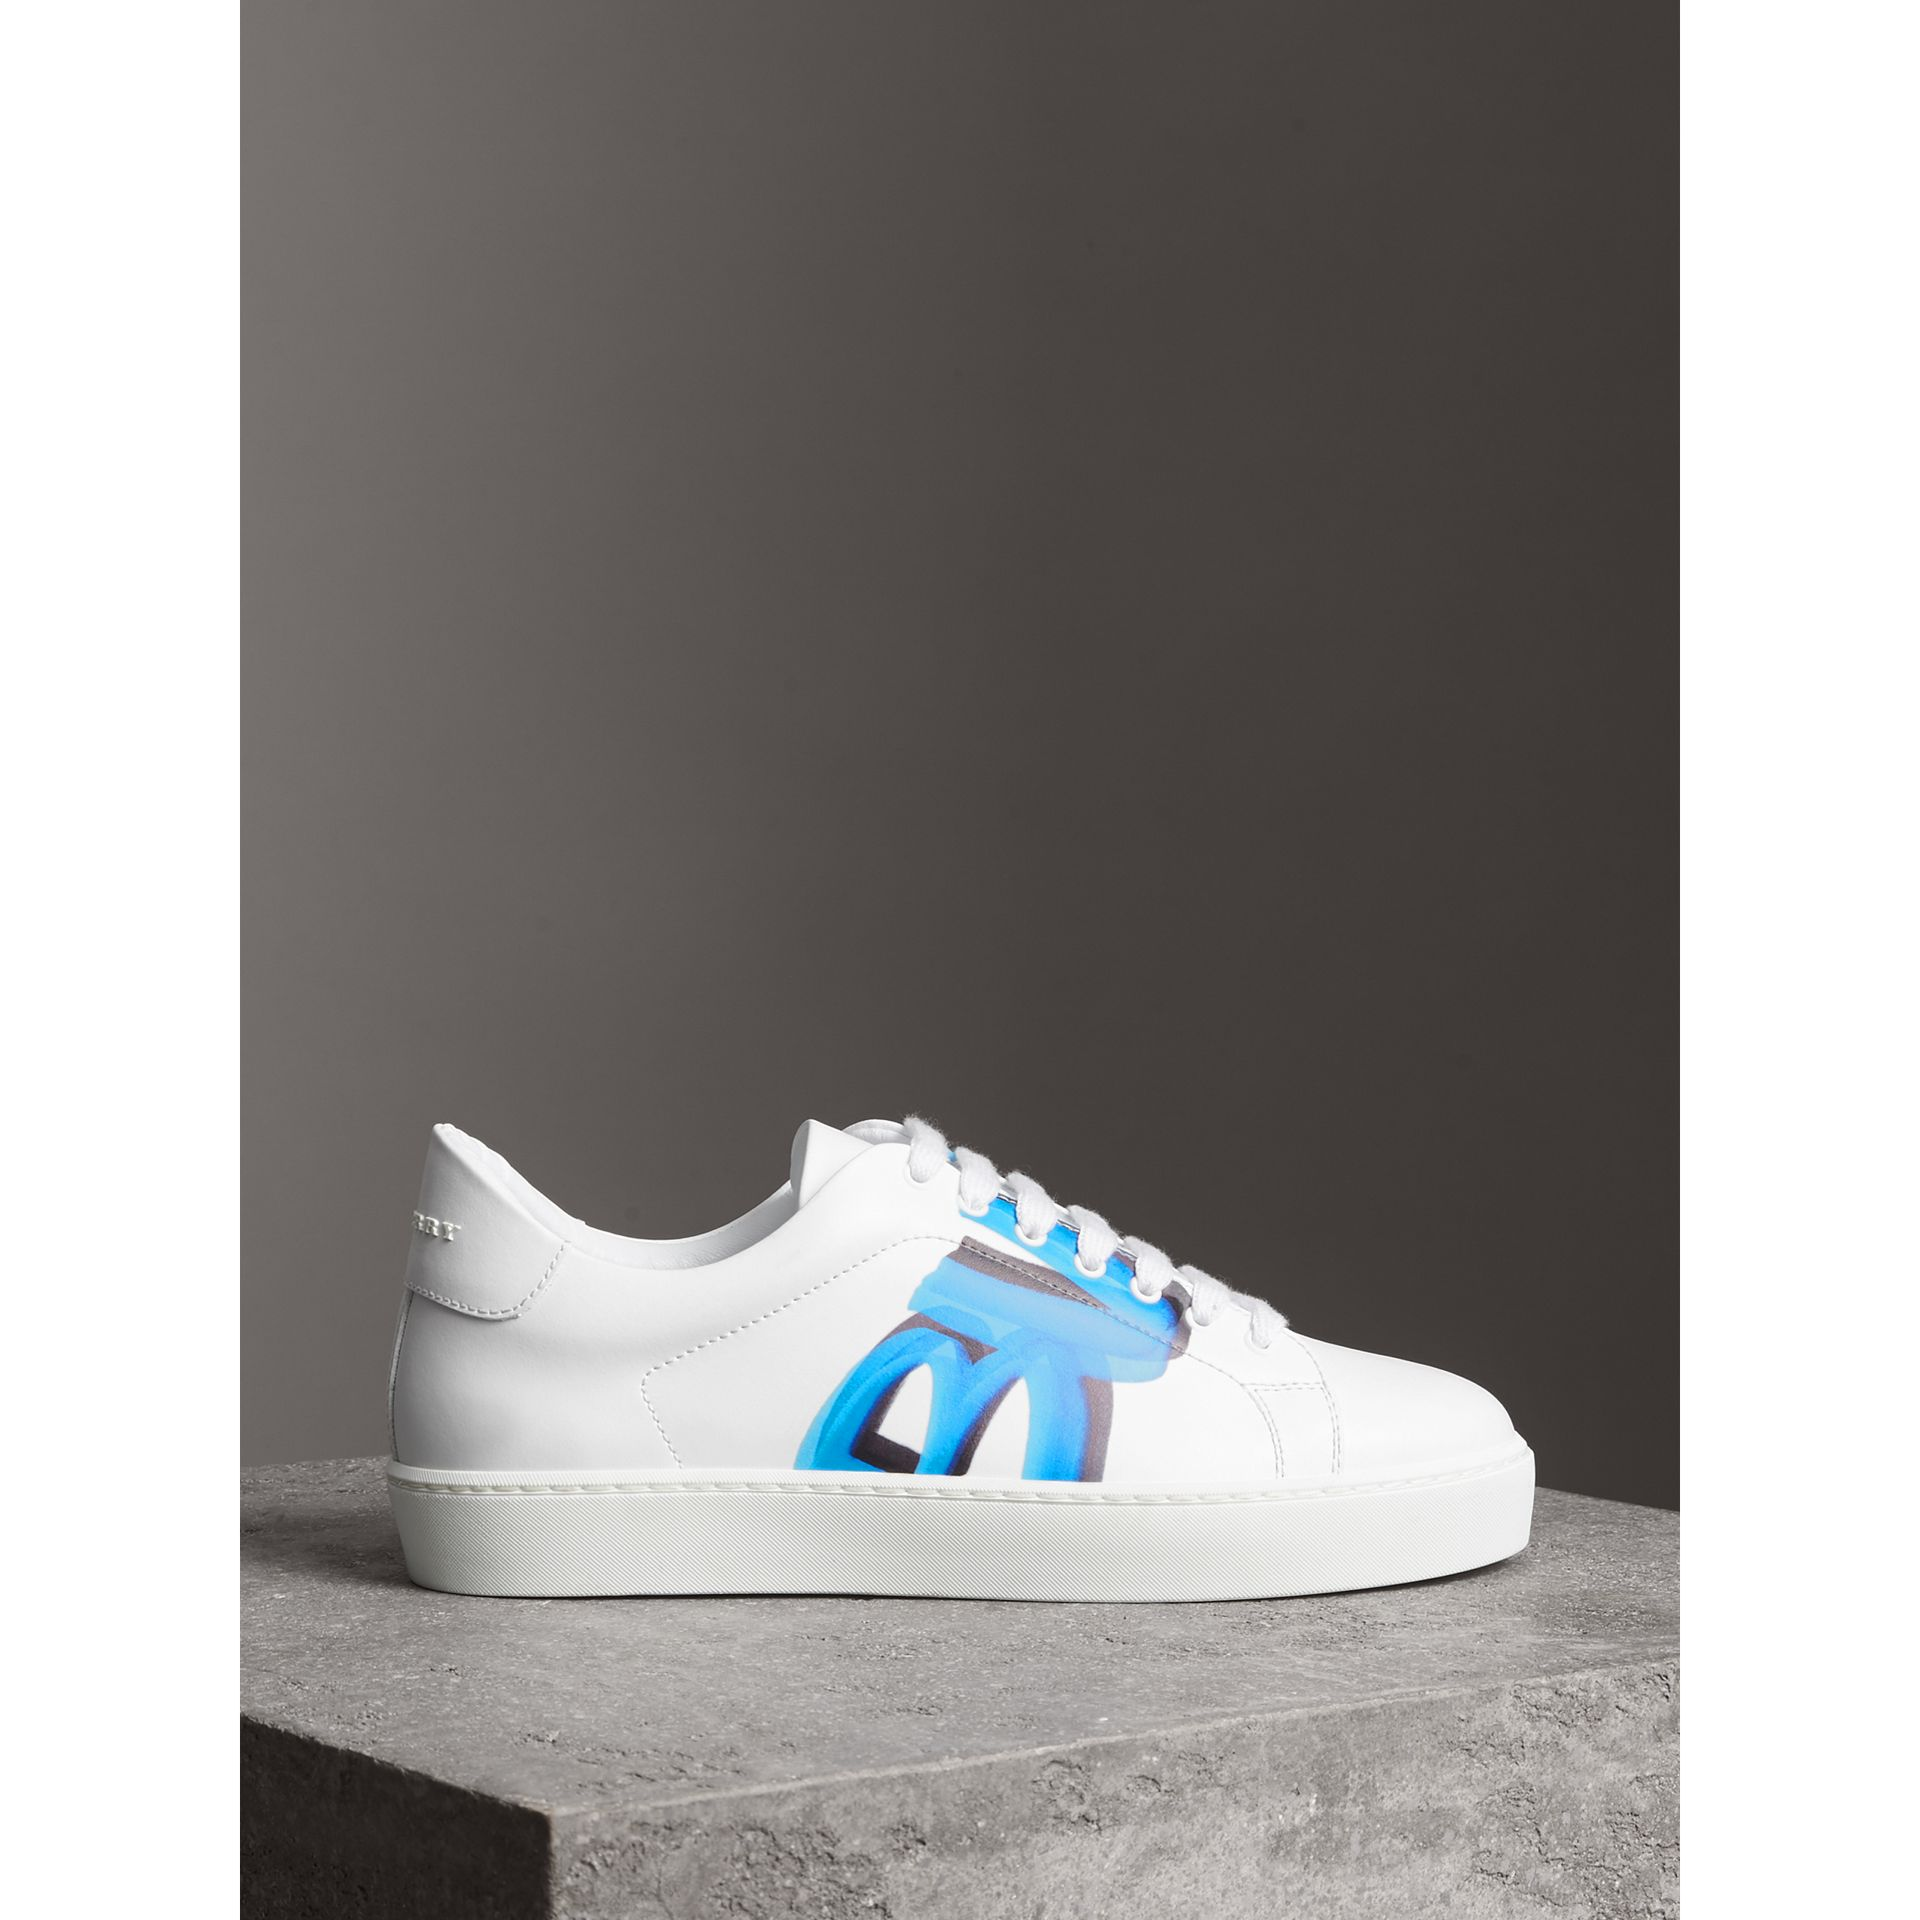 Graffiti Print Leather Sneakers in Bright Sky Blue - Women | Burberry Singapore - gallery image 4